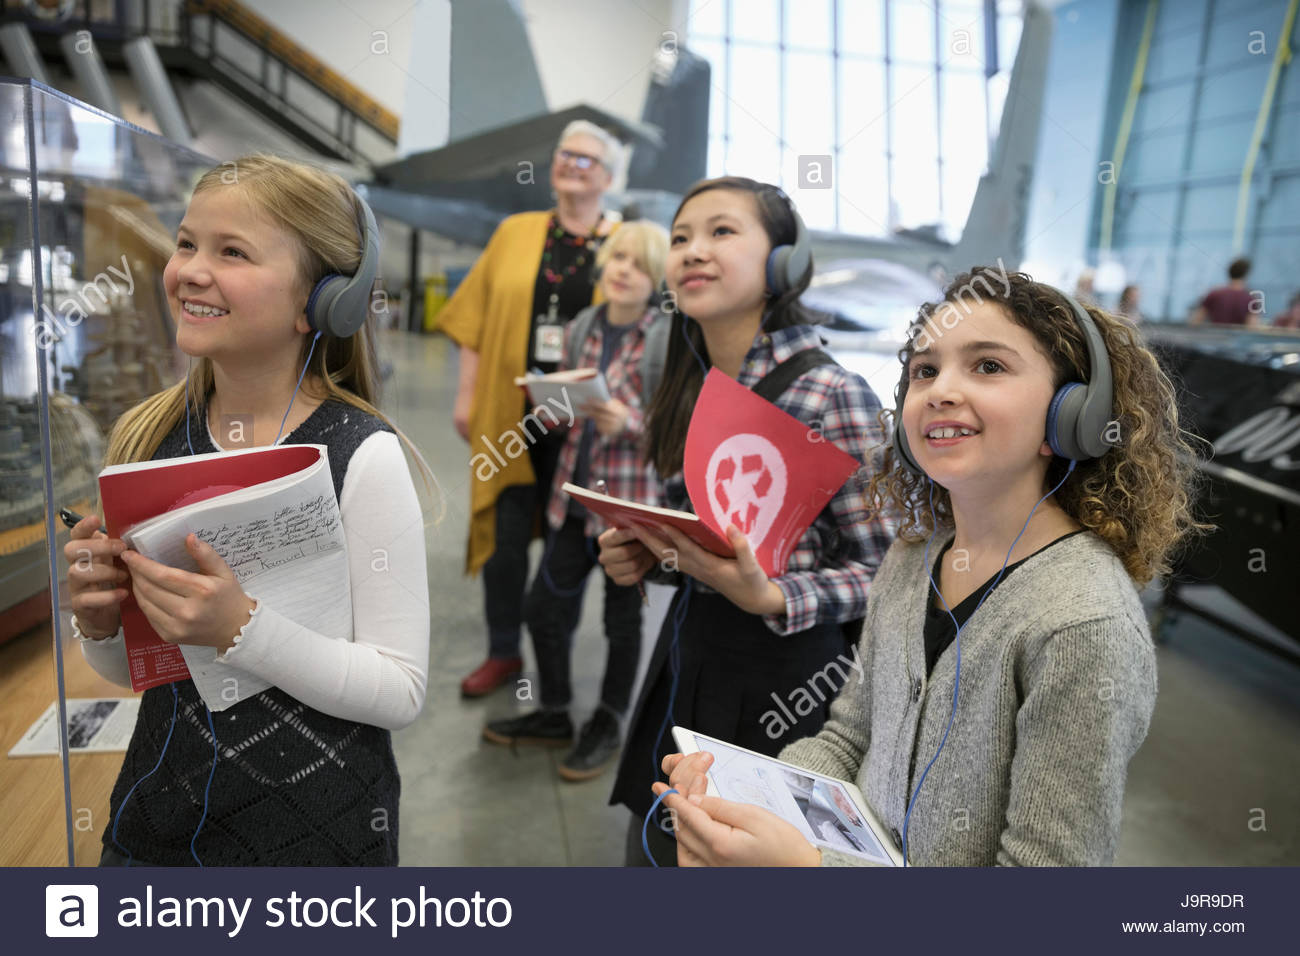 Smiling, curious students wearing headphones and taking notes at exhibit on field trip in war museum - Stock Image